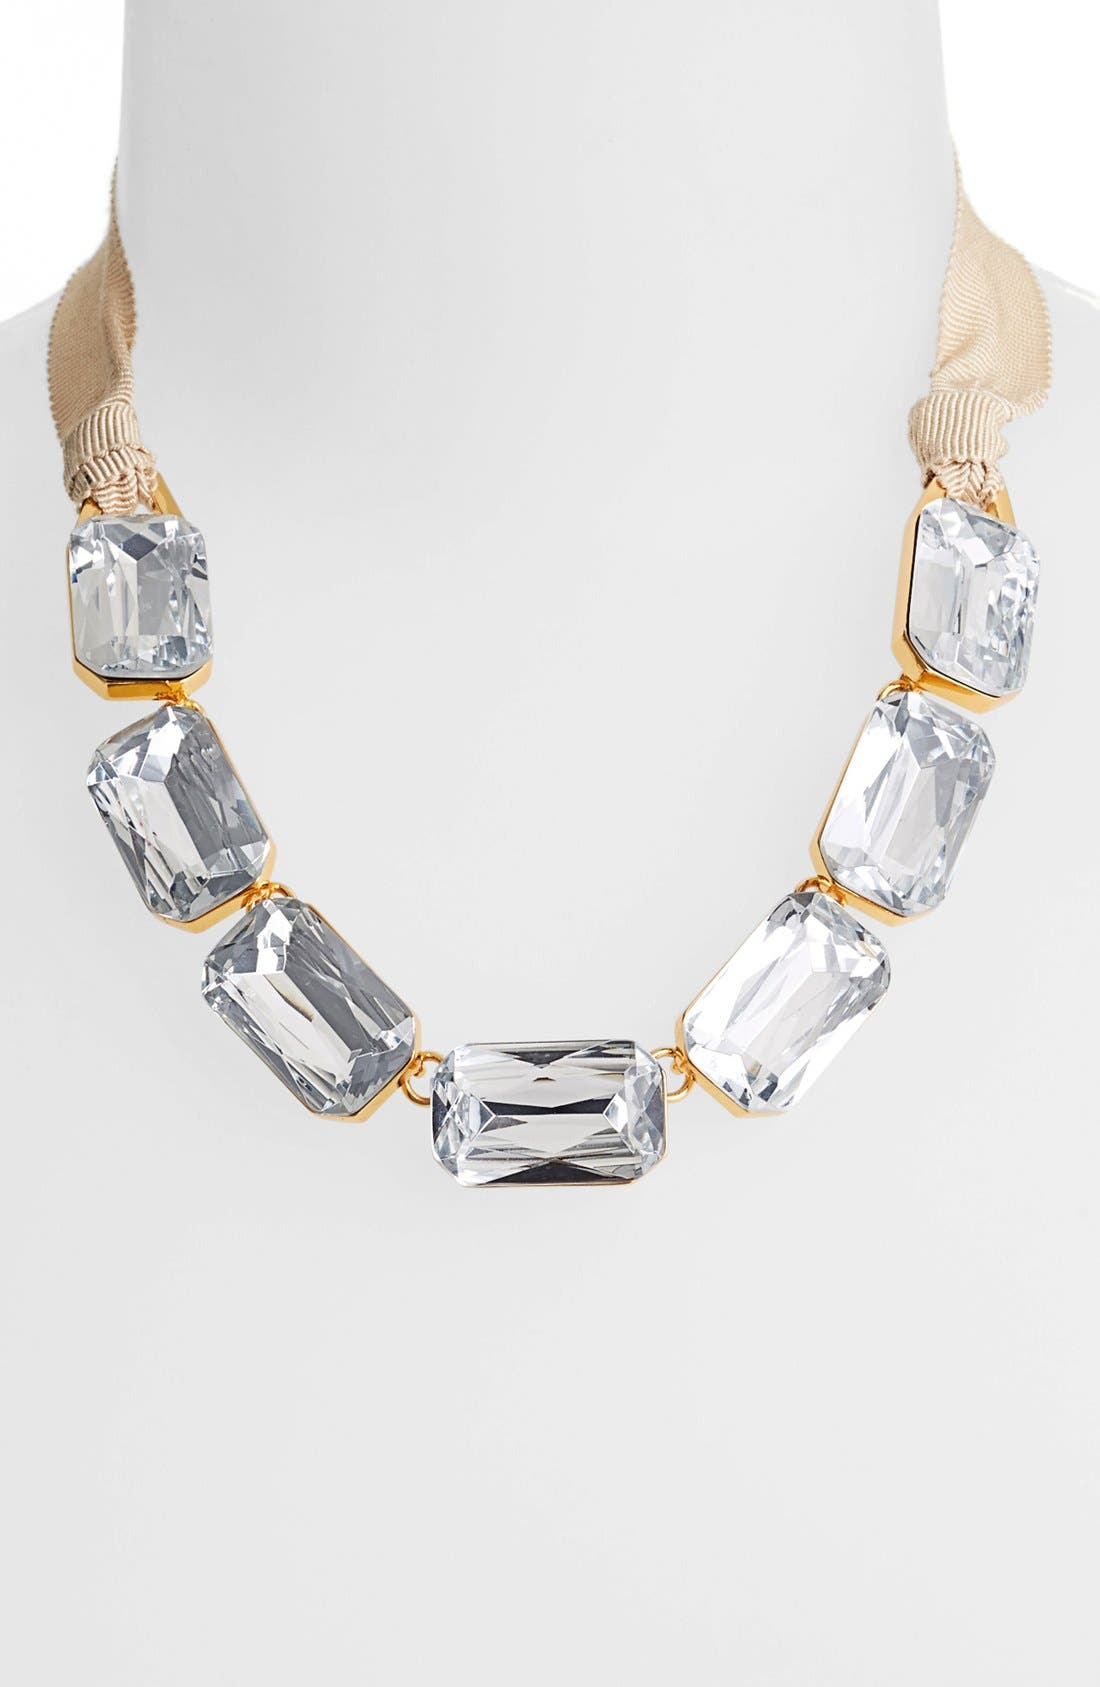 Alternate Image 1 Selected - Vince Camuto 'Crystal Clear' Crystal & Ribbon Frontal Necklace